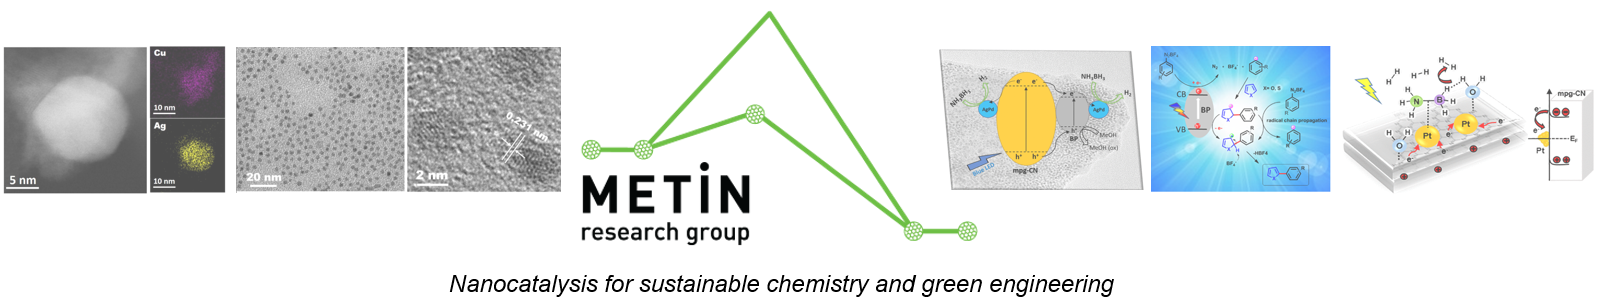 Metin Research Group